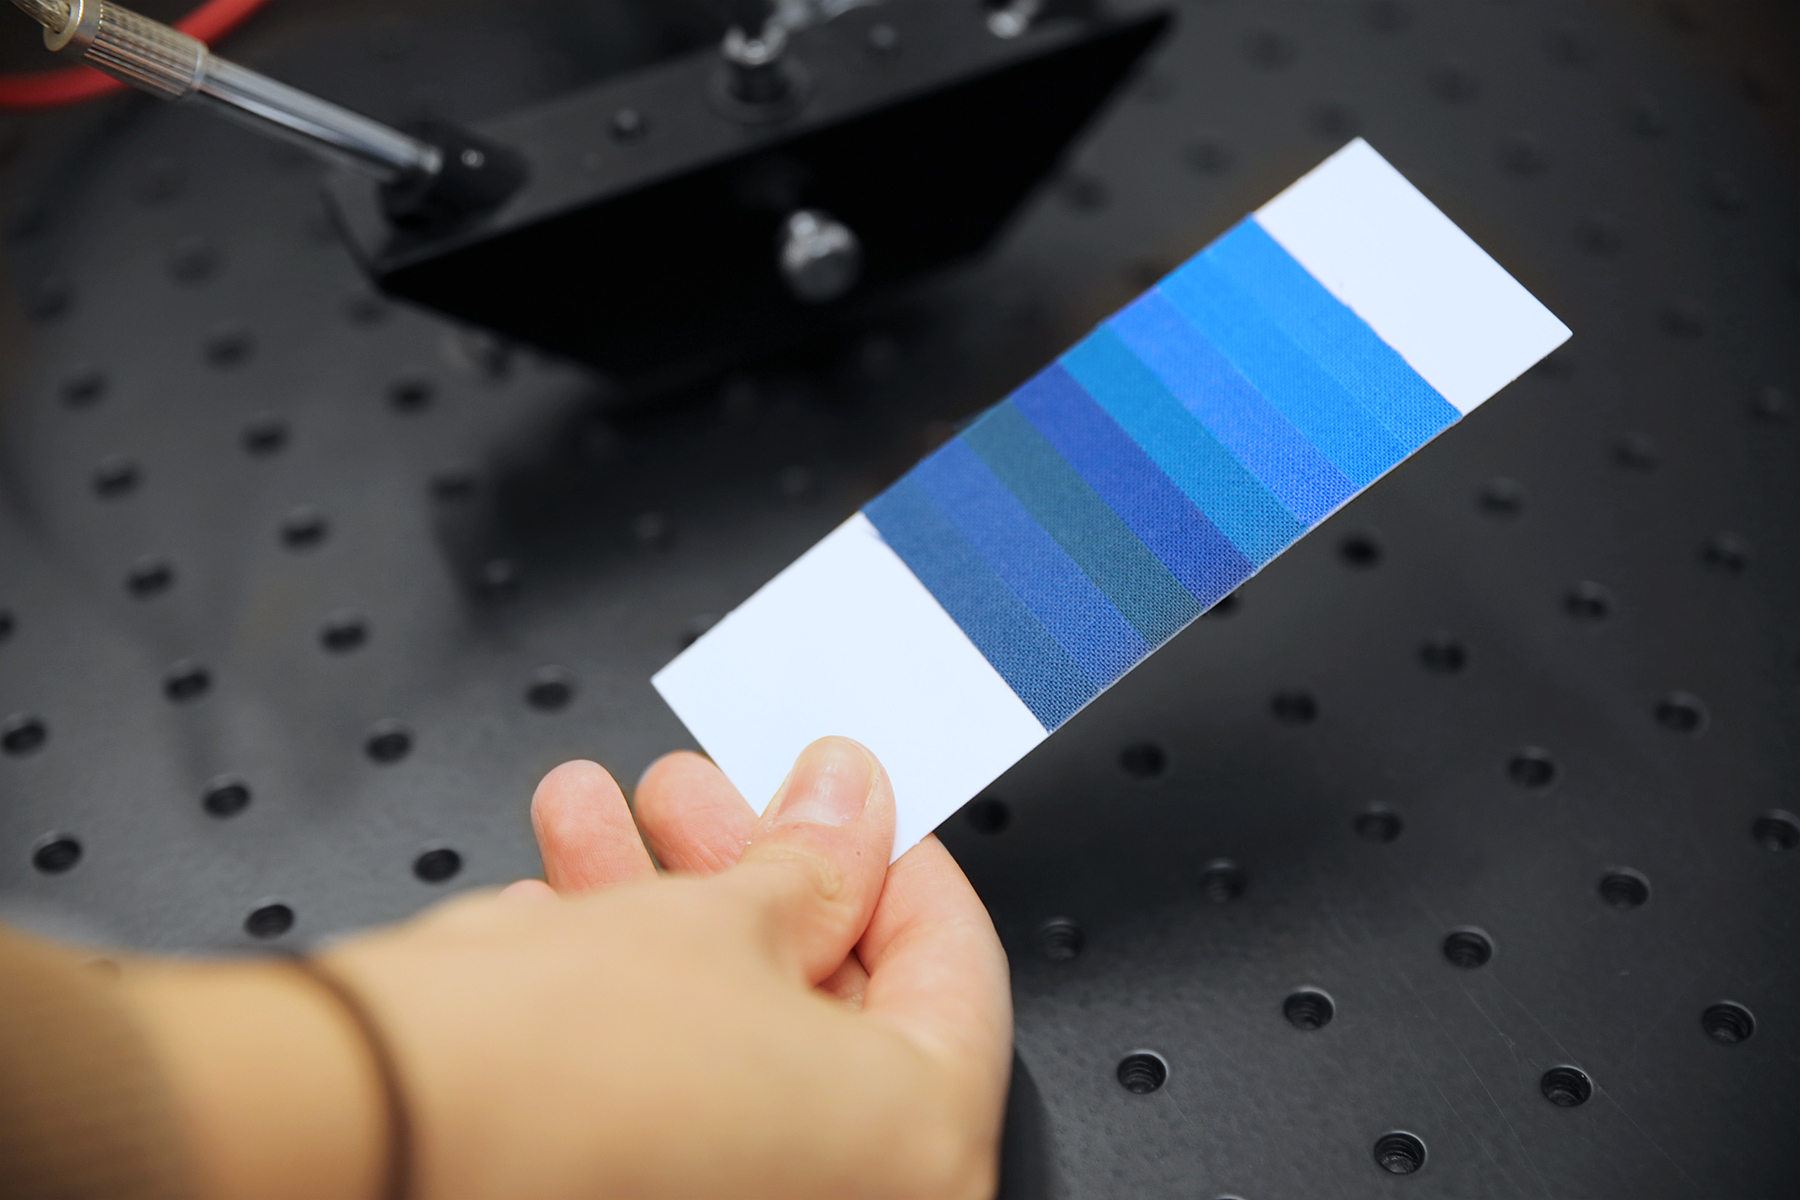 The eight Blue Wool Standards are available on a small card as reference for conservation scientists and others who are assessing light sensitivity.